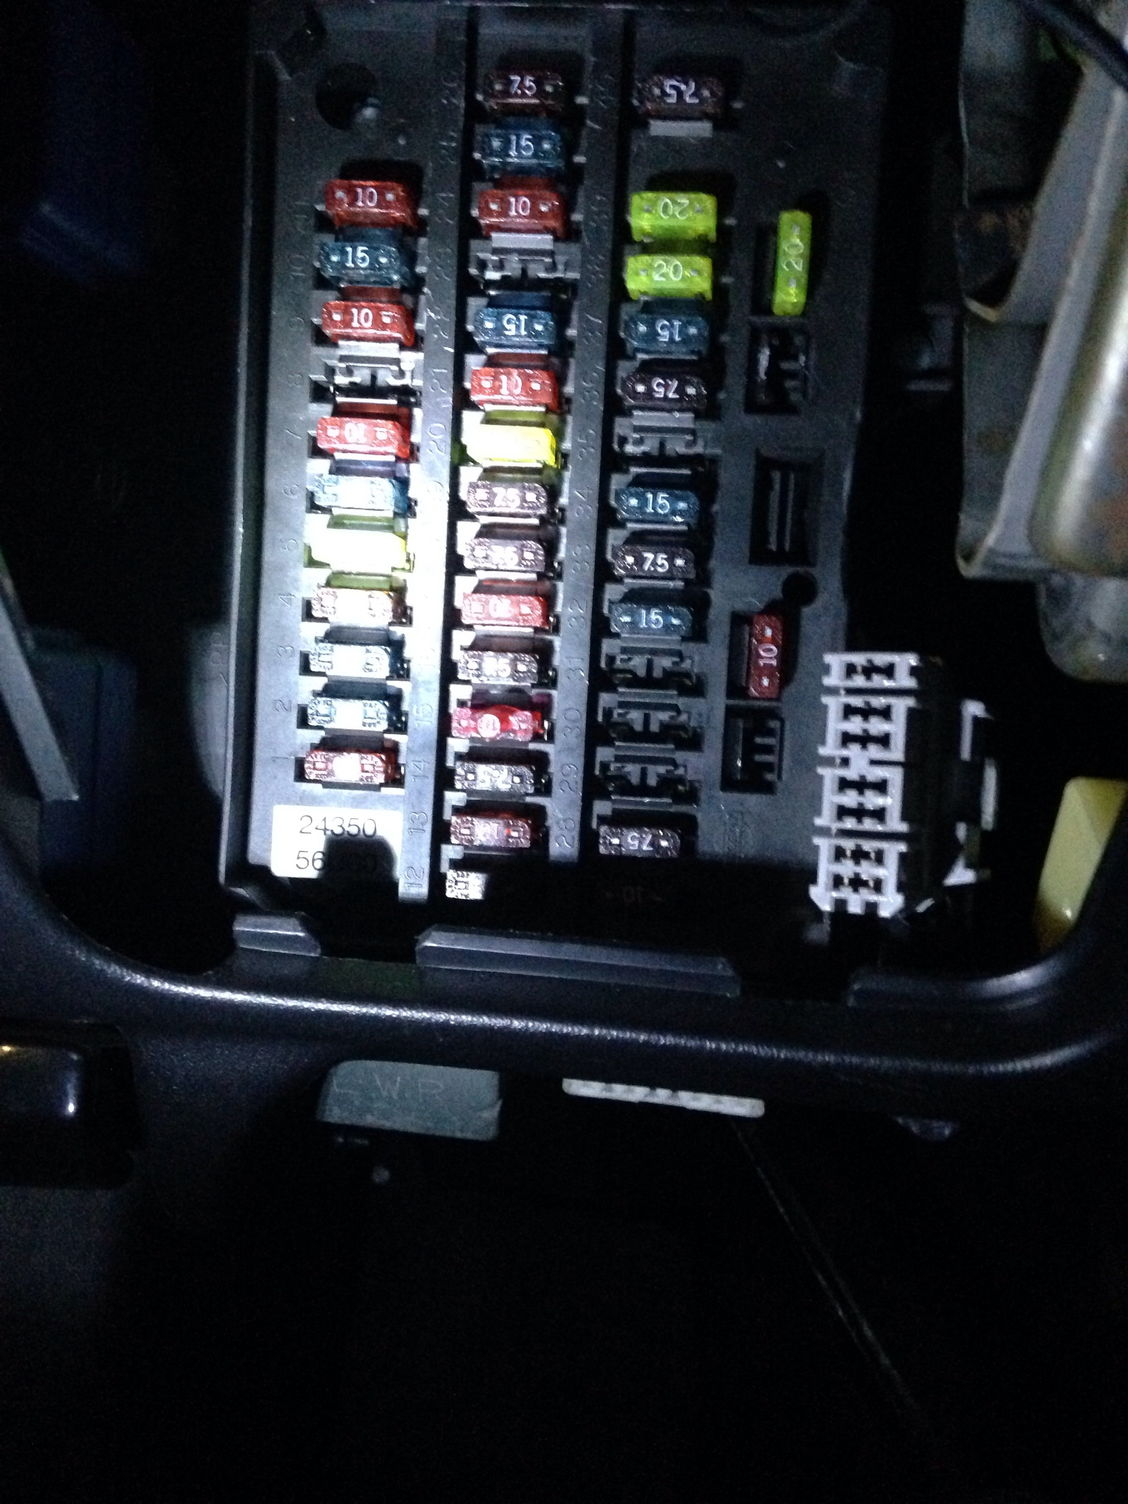 80 image_6827116a6727a91263d3885fc9427db50635515a?resize=618%2C824&ssl=1 1995 nissan maxima fuse box 1995 wiring diagrams collection 96 nissan maxima fuse box diagram at gsmx.co